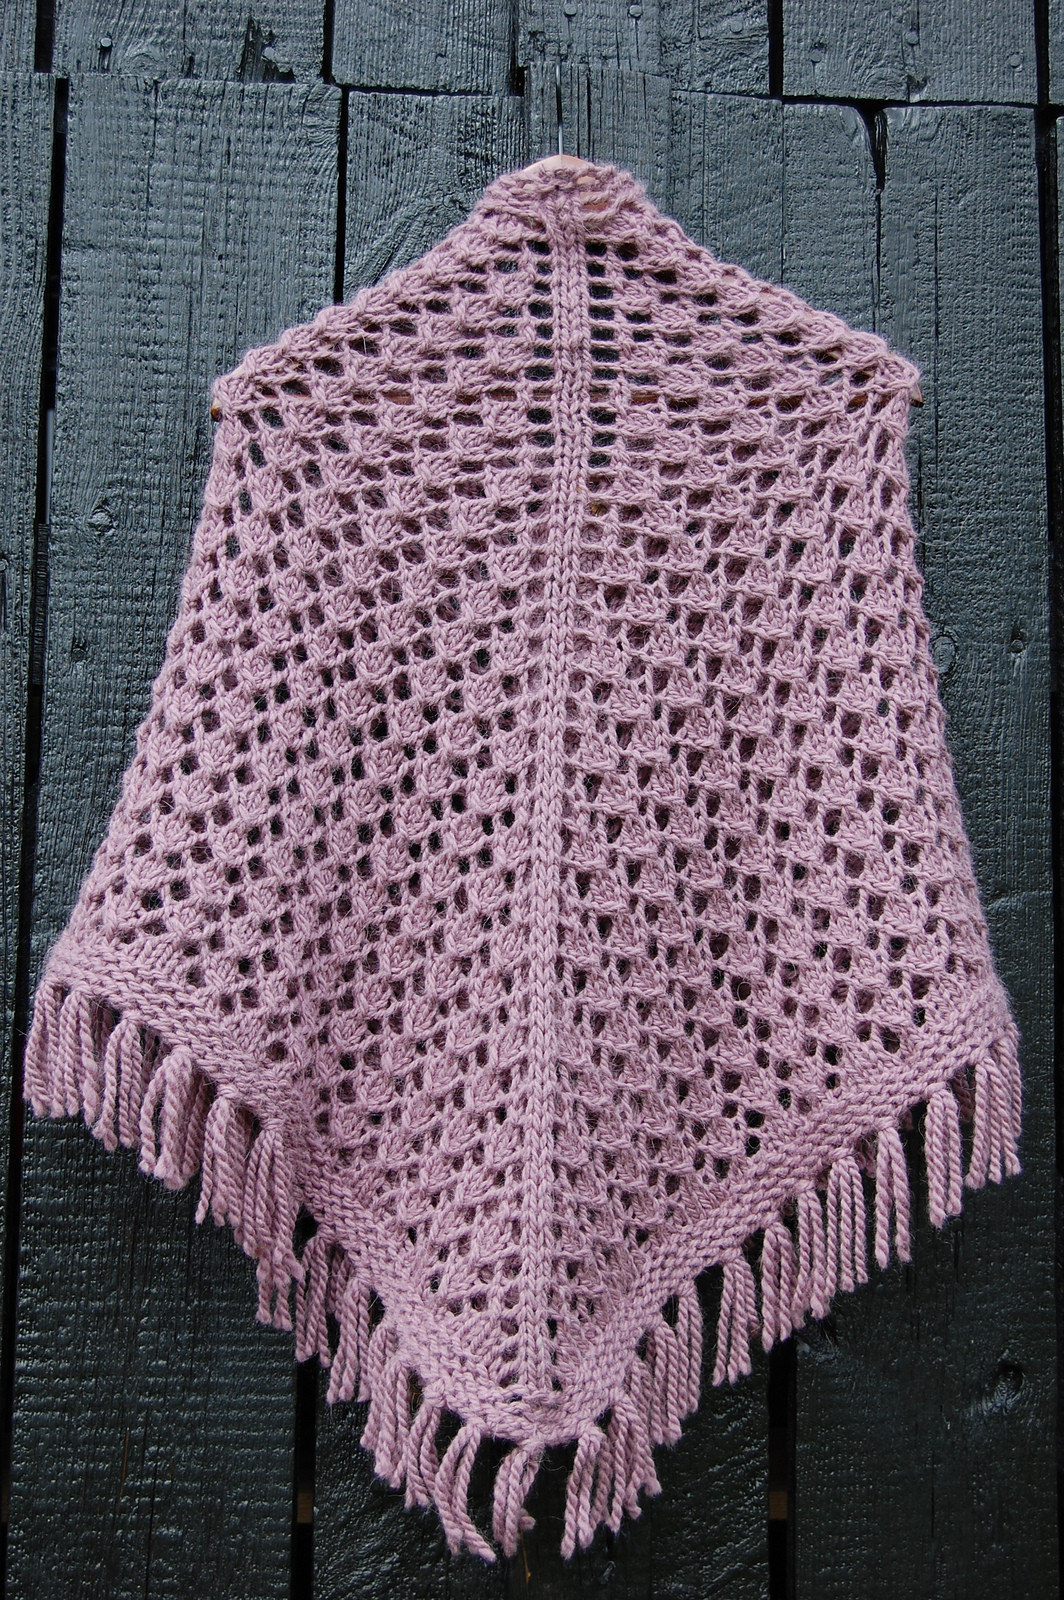 Free Shawl Knitting Patterns Unique Shawls for Bulky Yarn Knitting Patterns Of Brilliant 49 Models Free Shawl Knitting Patterns